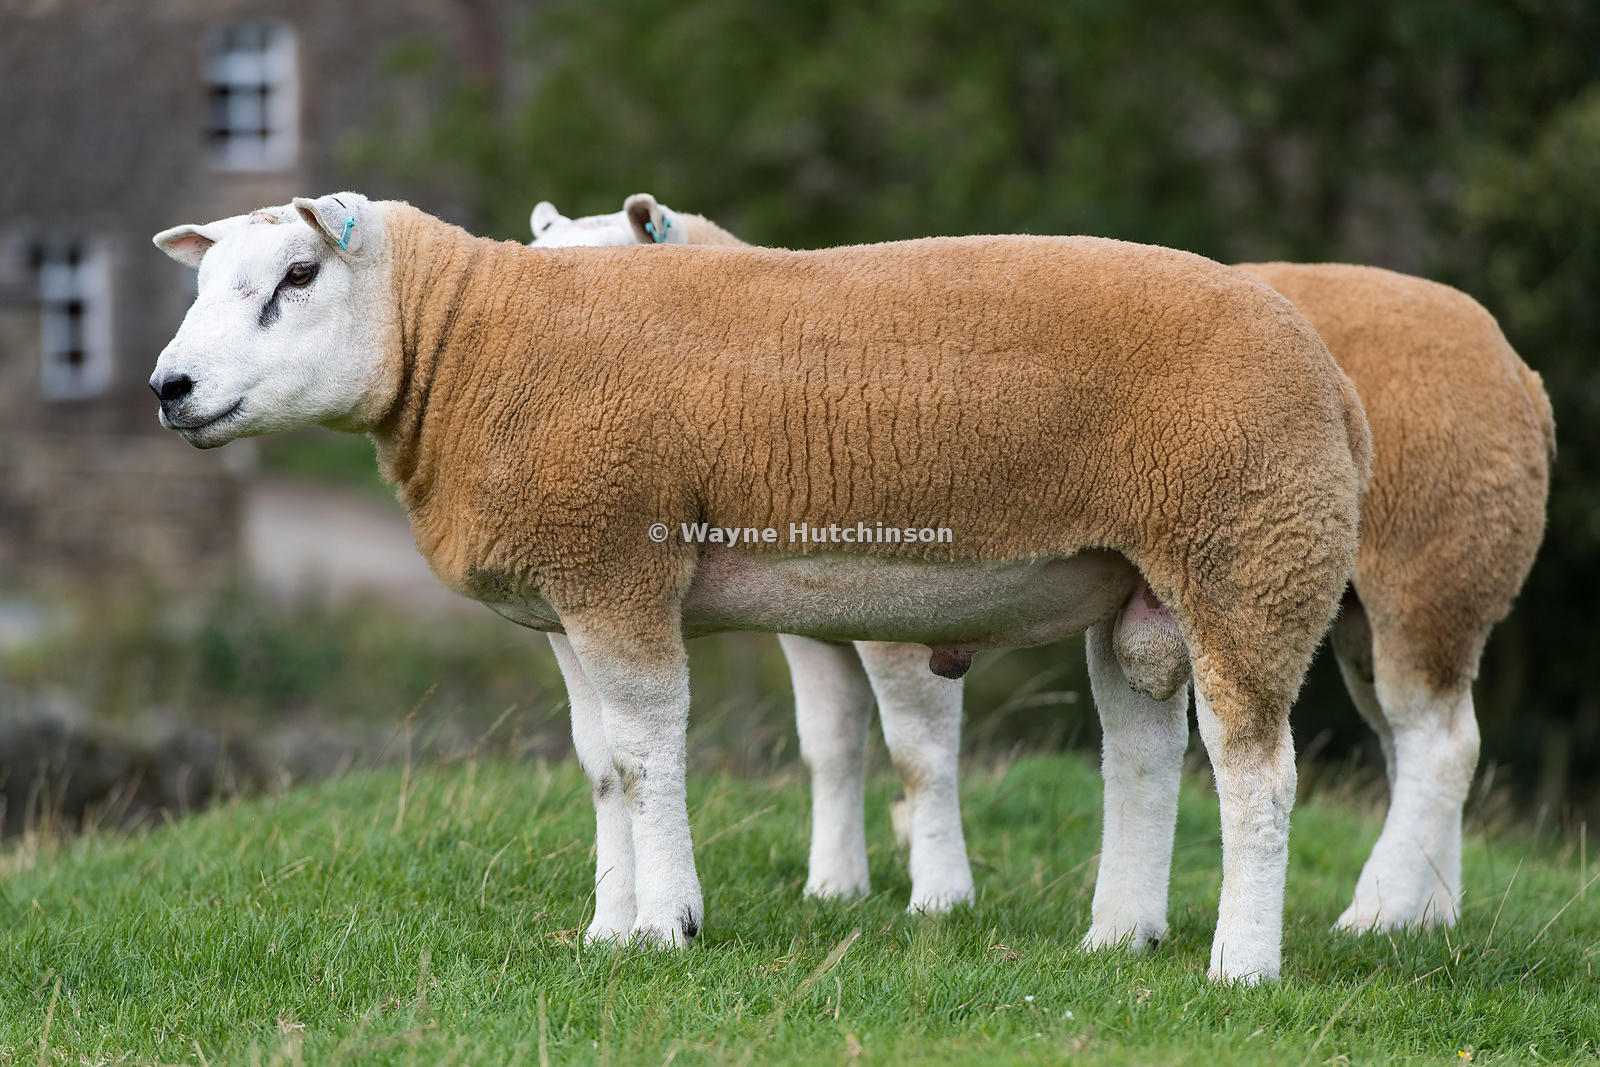 Texel rams in fields ready for autumn breeding sales, North Yorkshire, UK.